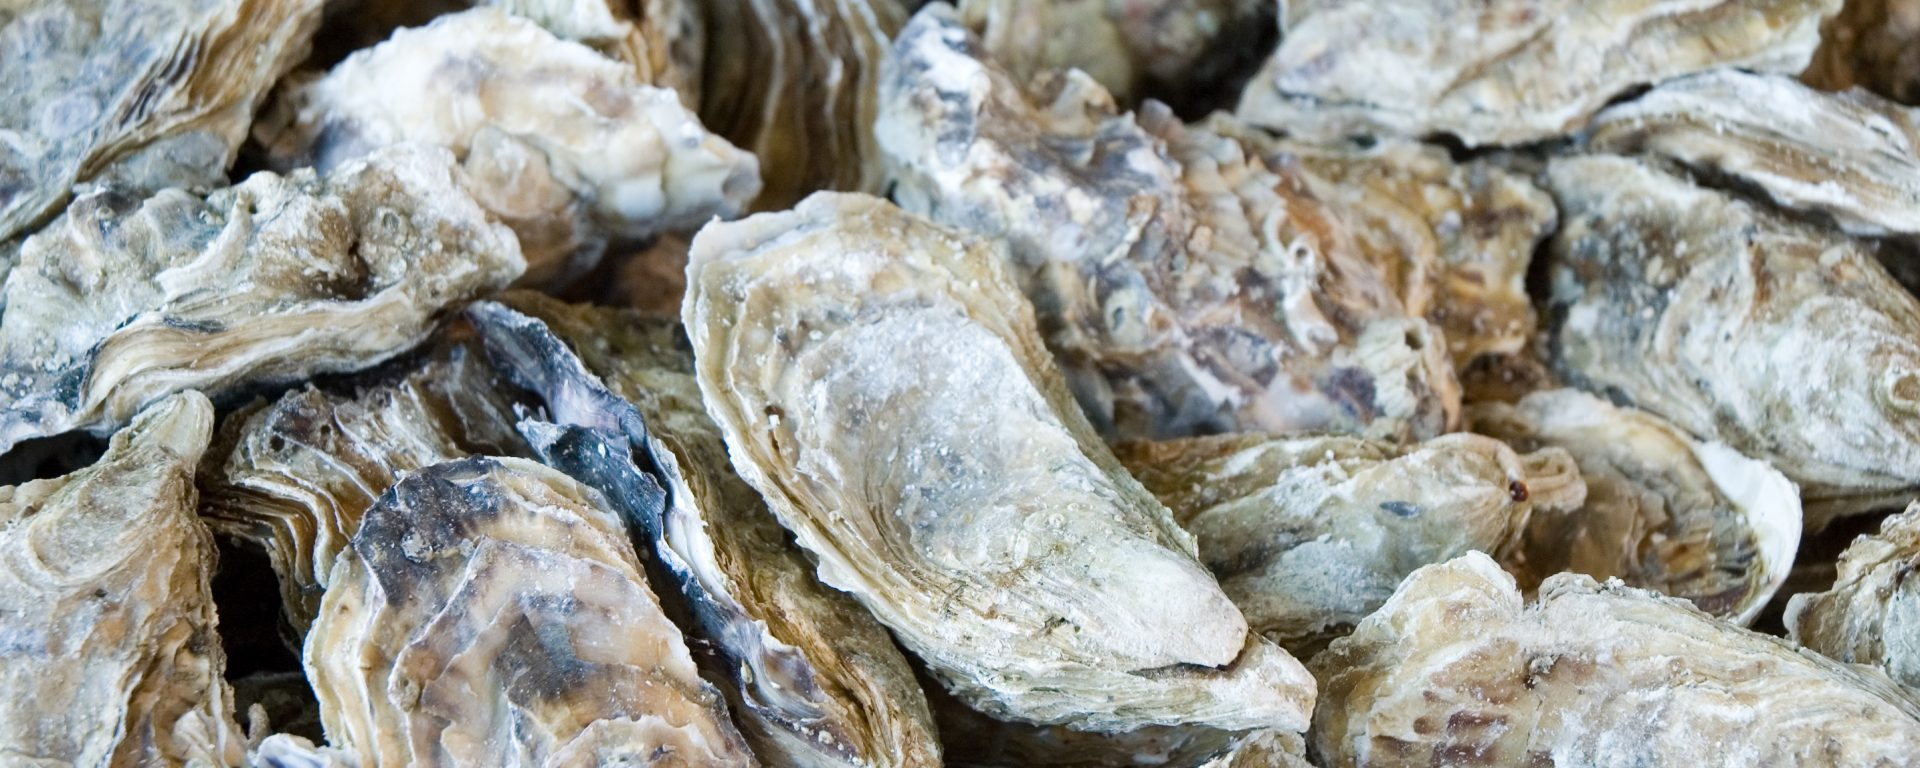 UMBC marine biologist Colleen Burge works to save world's oysters from deadly herpes virus